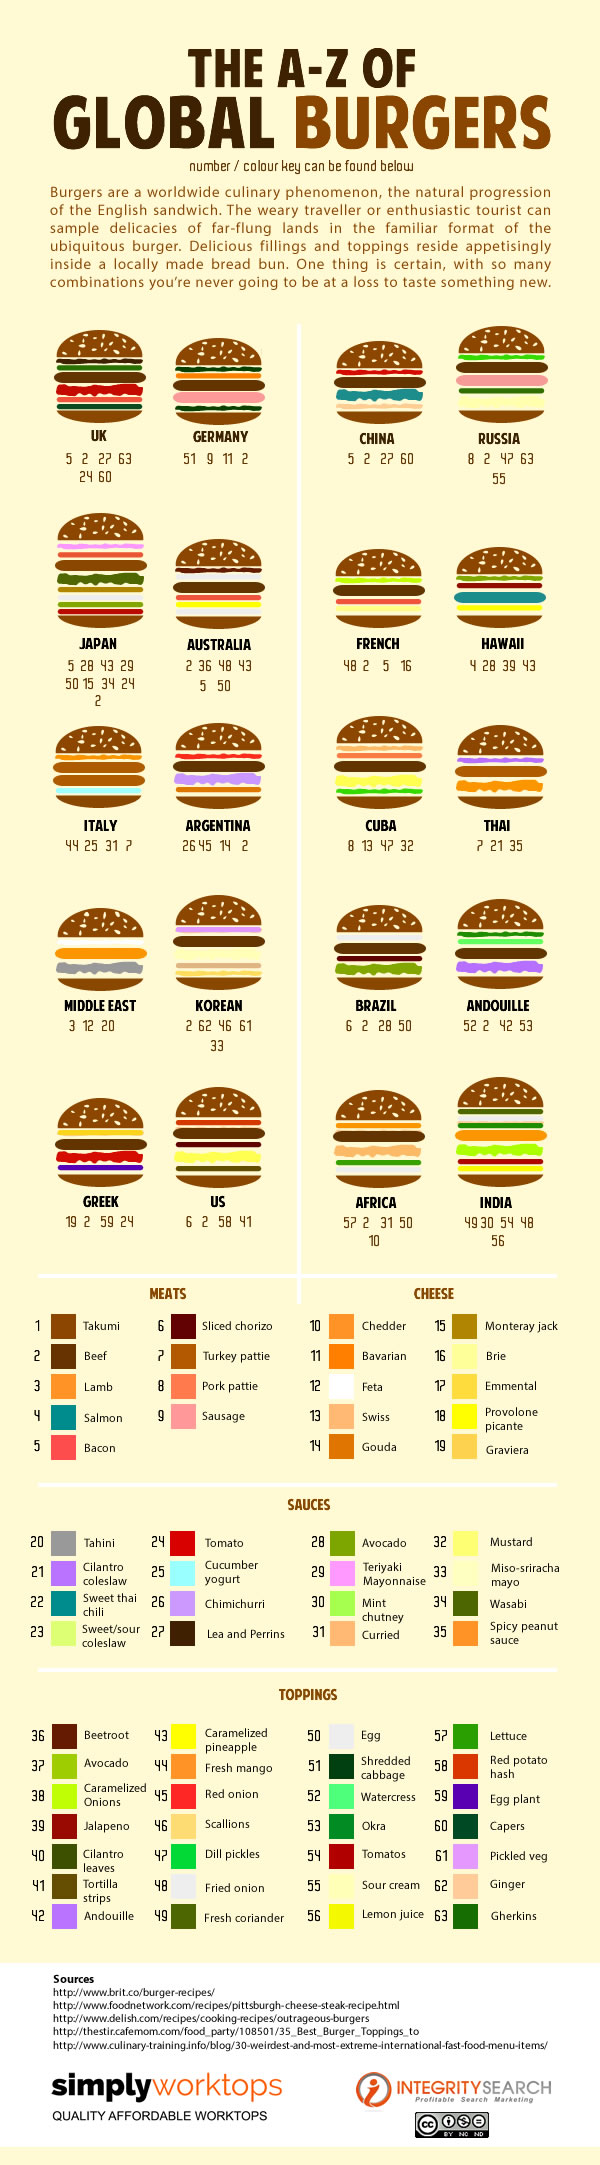 The_A-Z_of_Global_Burgers_infographic_j_jpeg